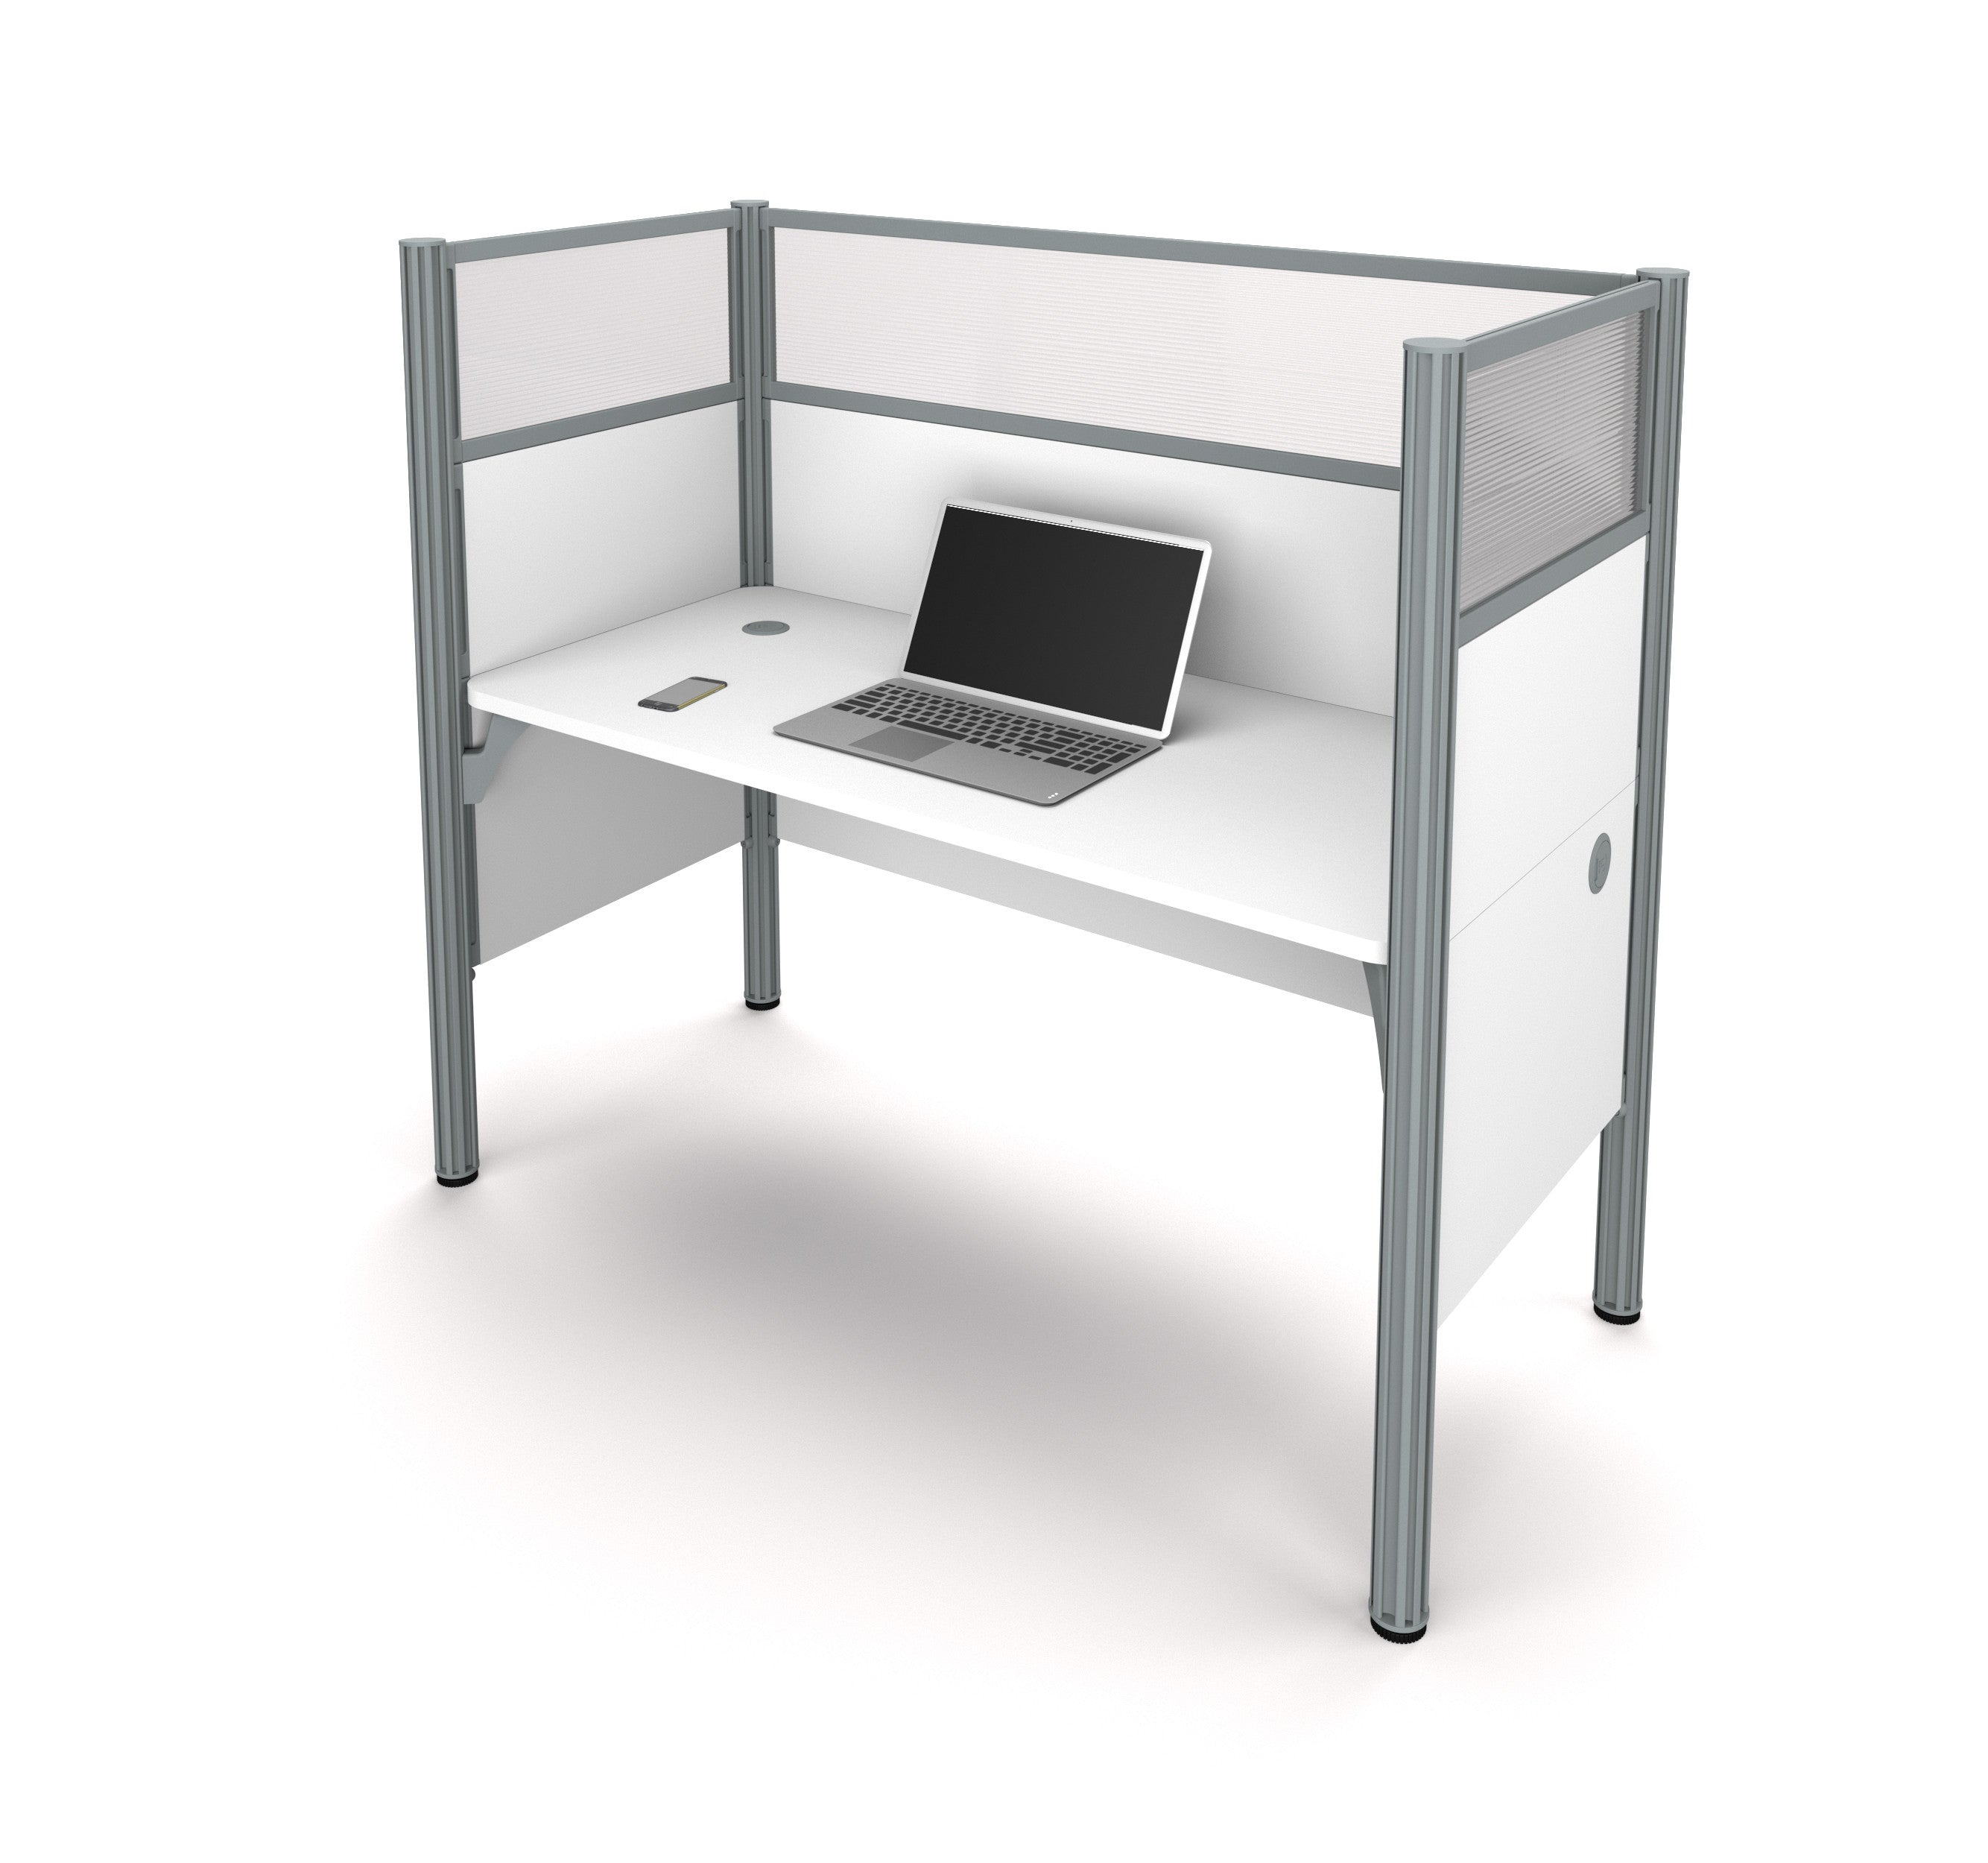 "Pro-Biz Premium 62"" Workstation with 55"" Privacy Panel in White"